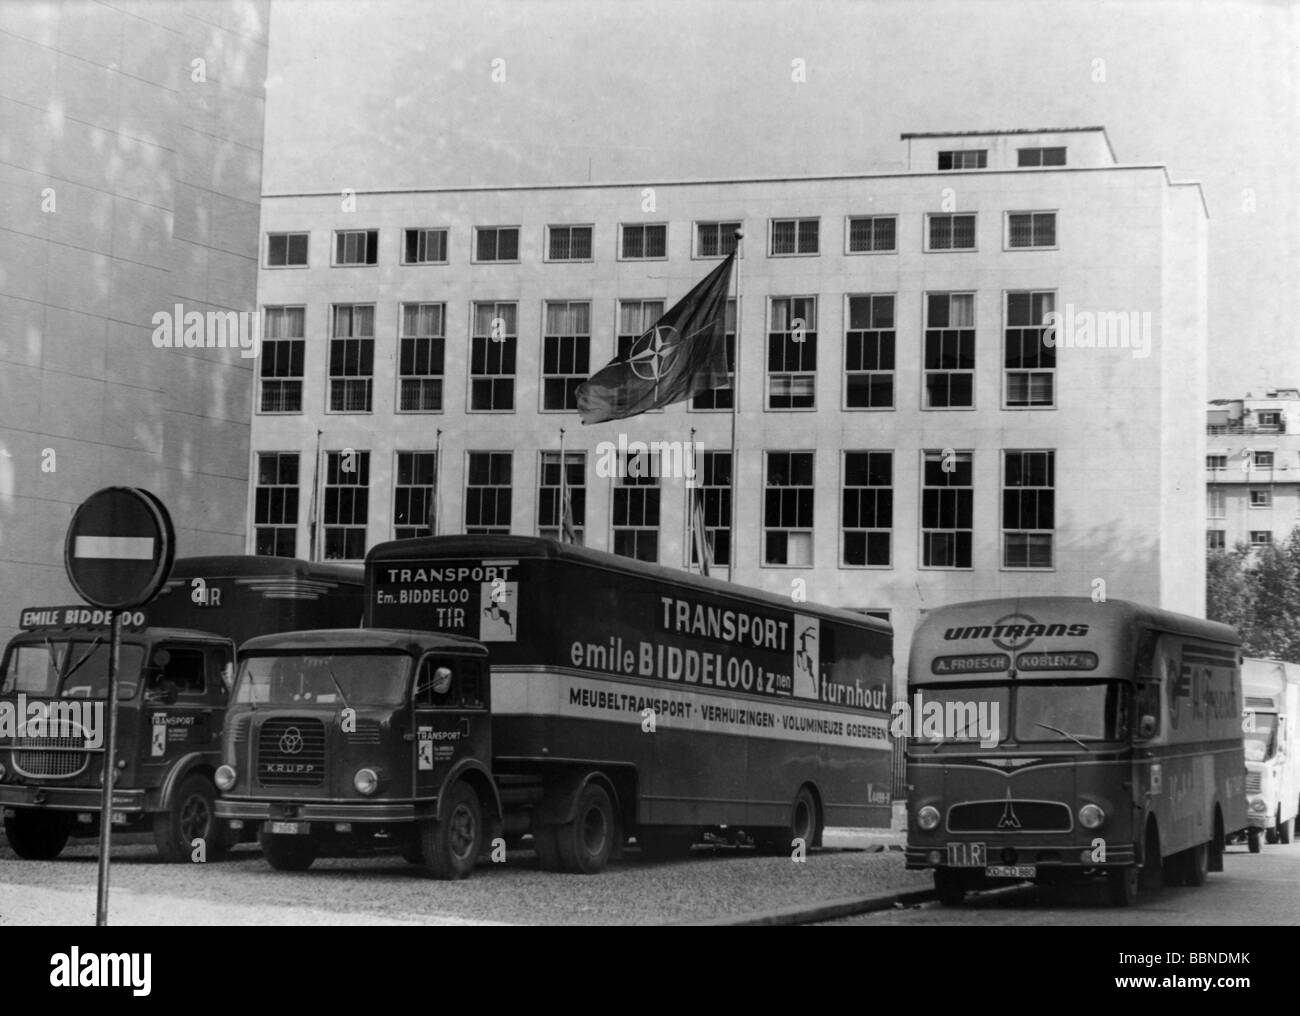 Charmant Politics, NATO, Relocation From France To Belgium, Furniture Lorries,  Paris, 10.2.1967, Lorry, Removal Van, Vans, 20th Century,